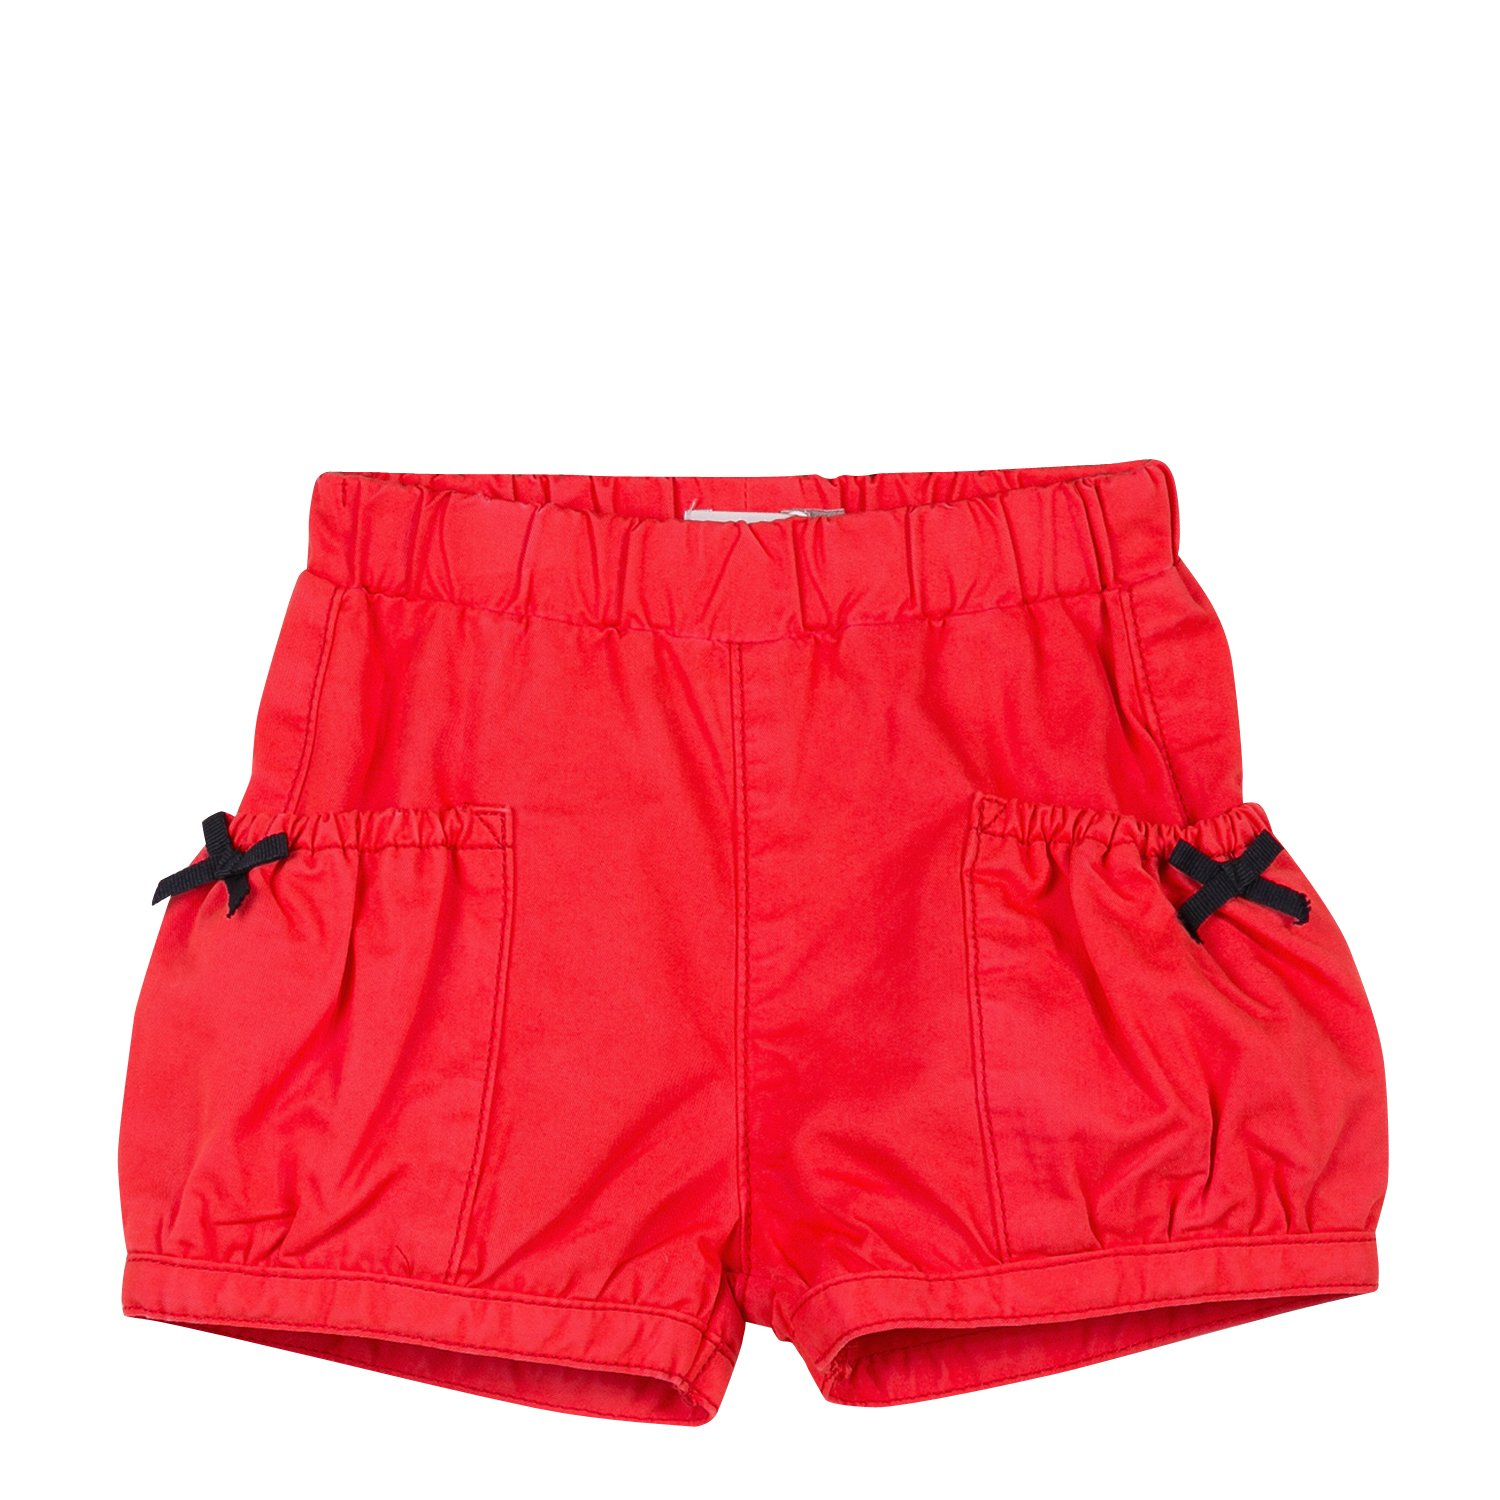 Catimini Baby Girls' Twill Shorts CL26053